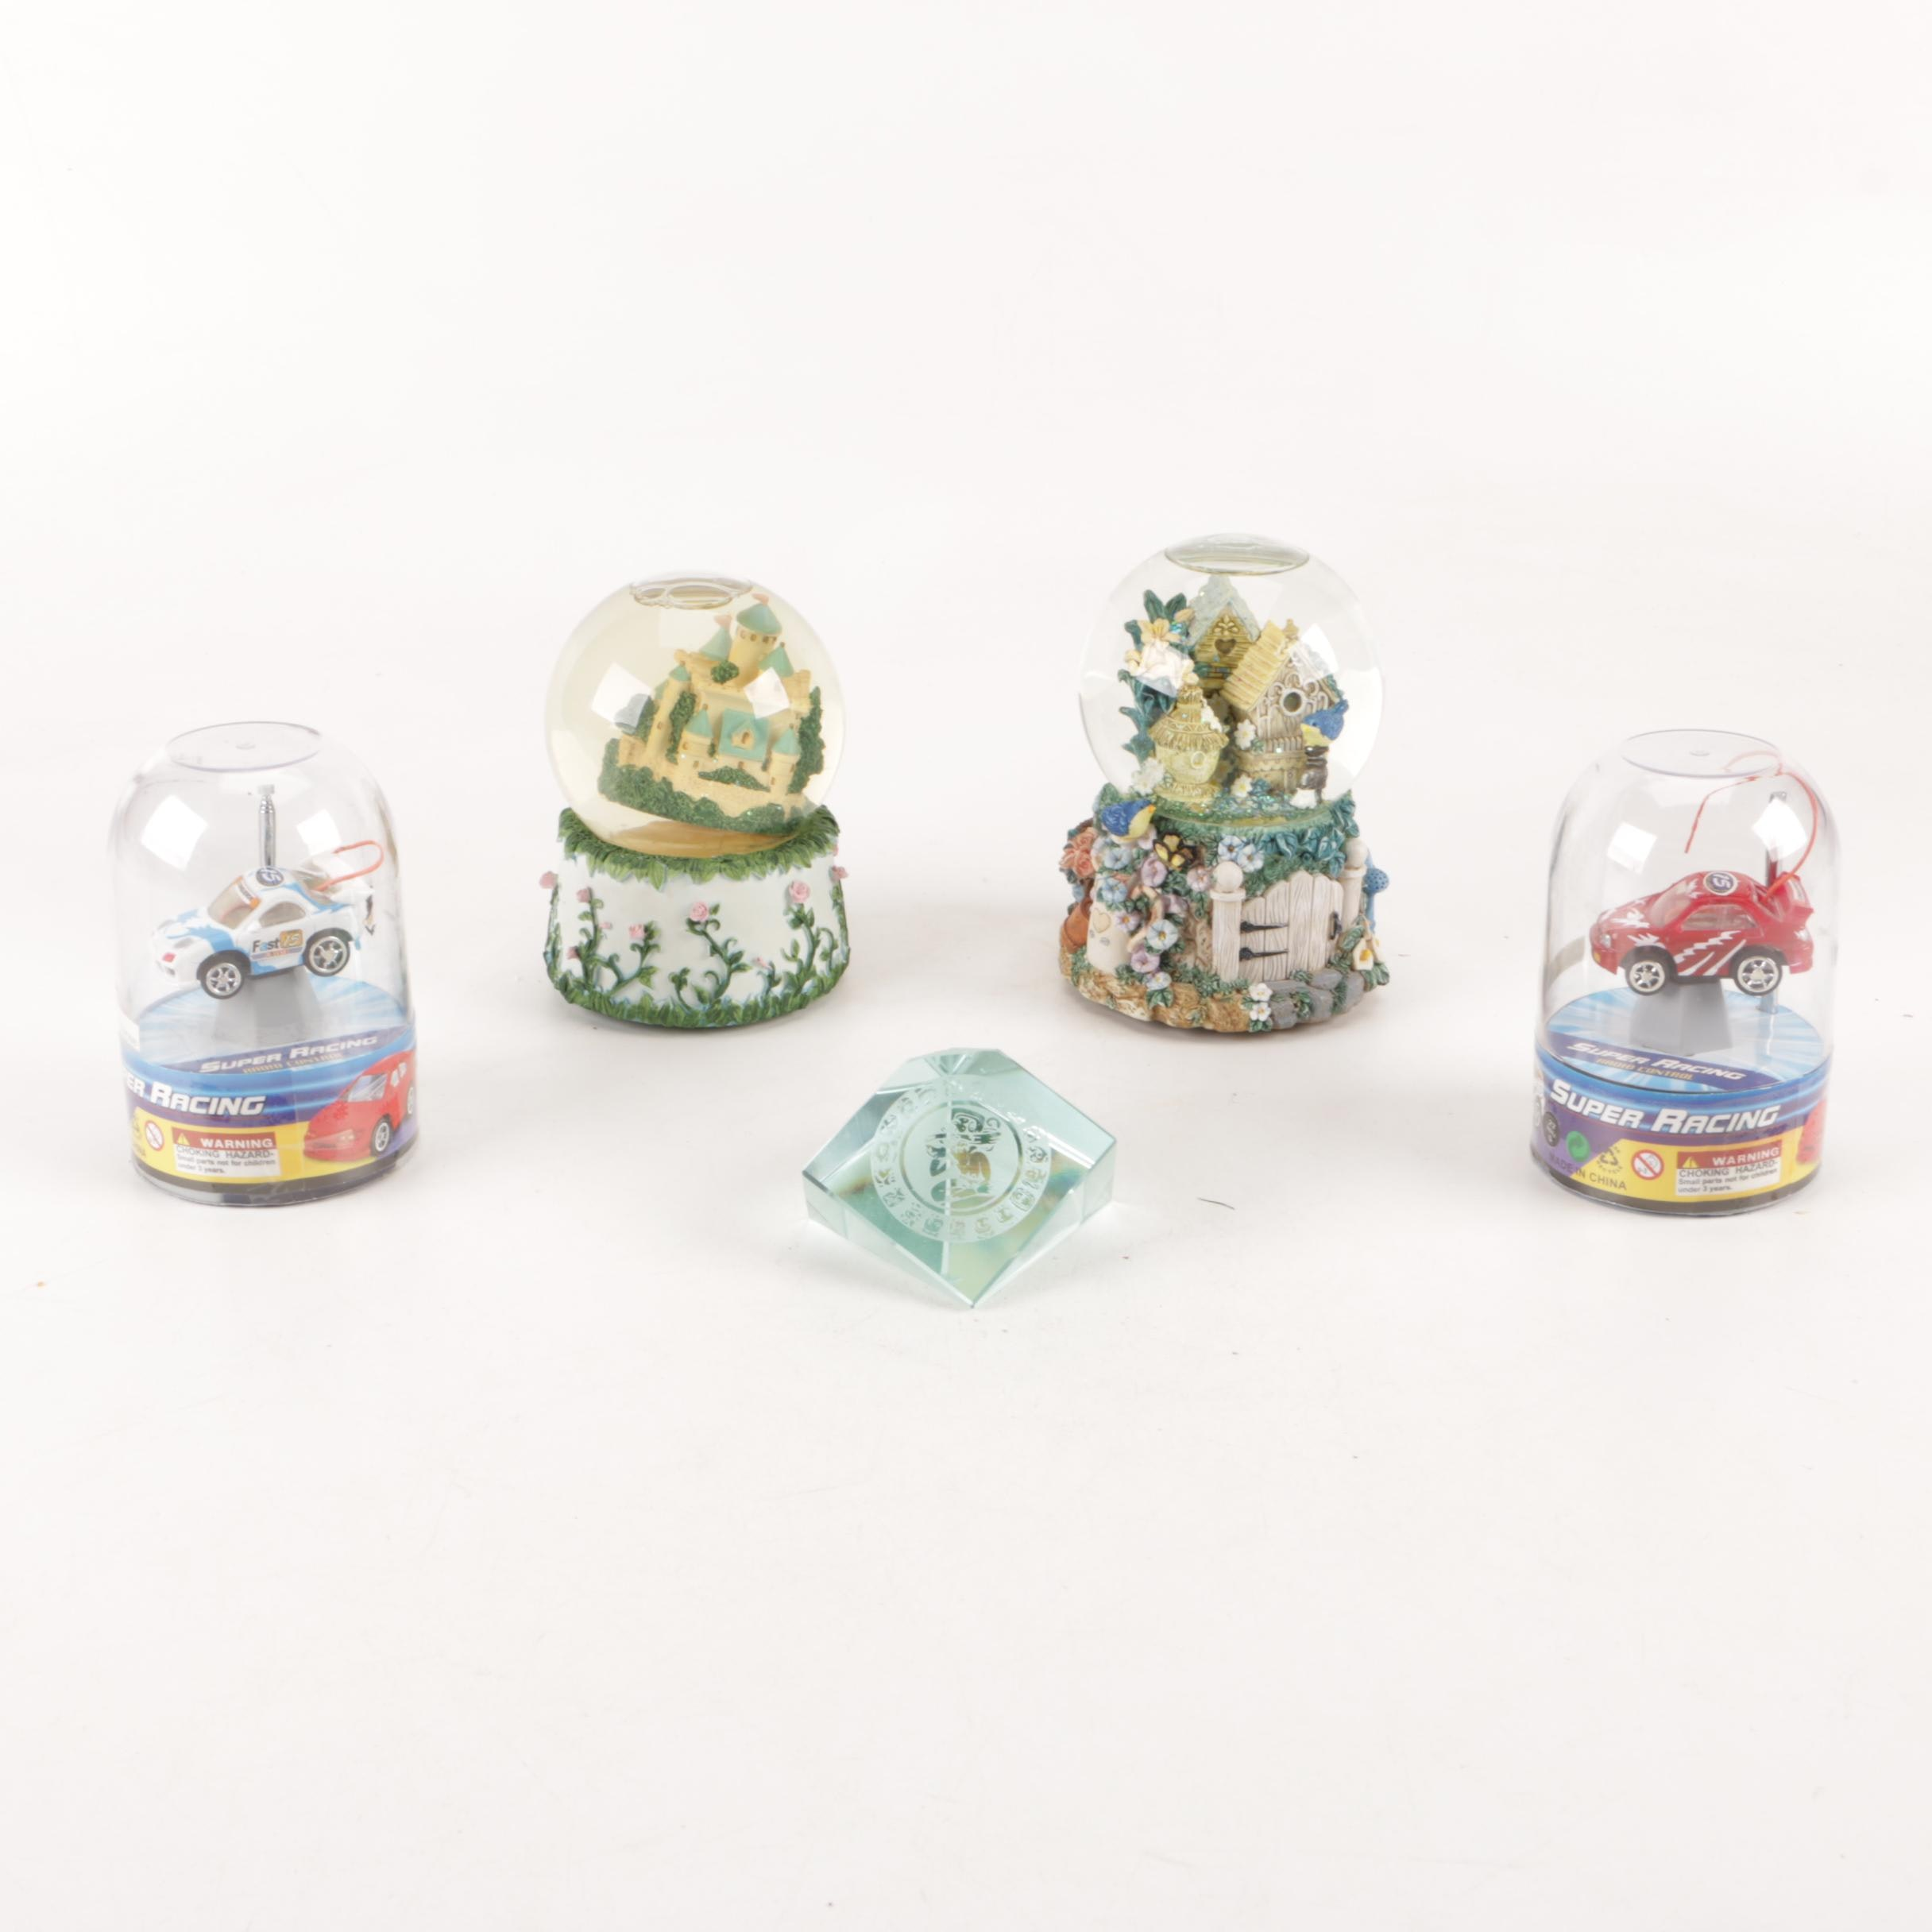 San Francisco Music Box Company Snow Globes, Paperweight, And Toy Cars